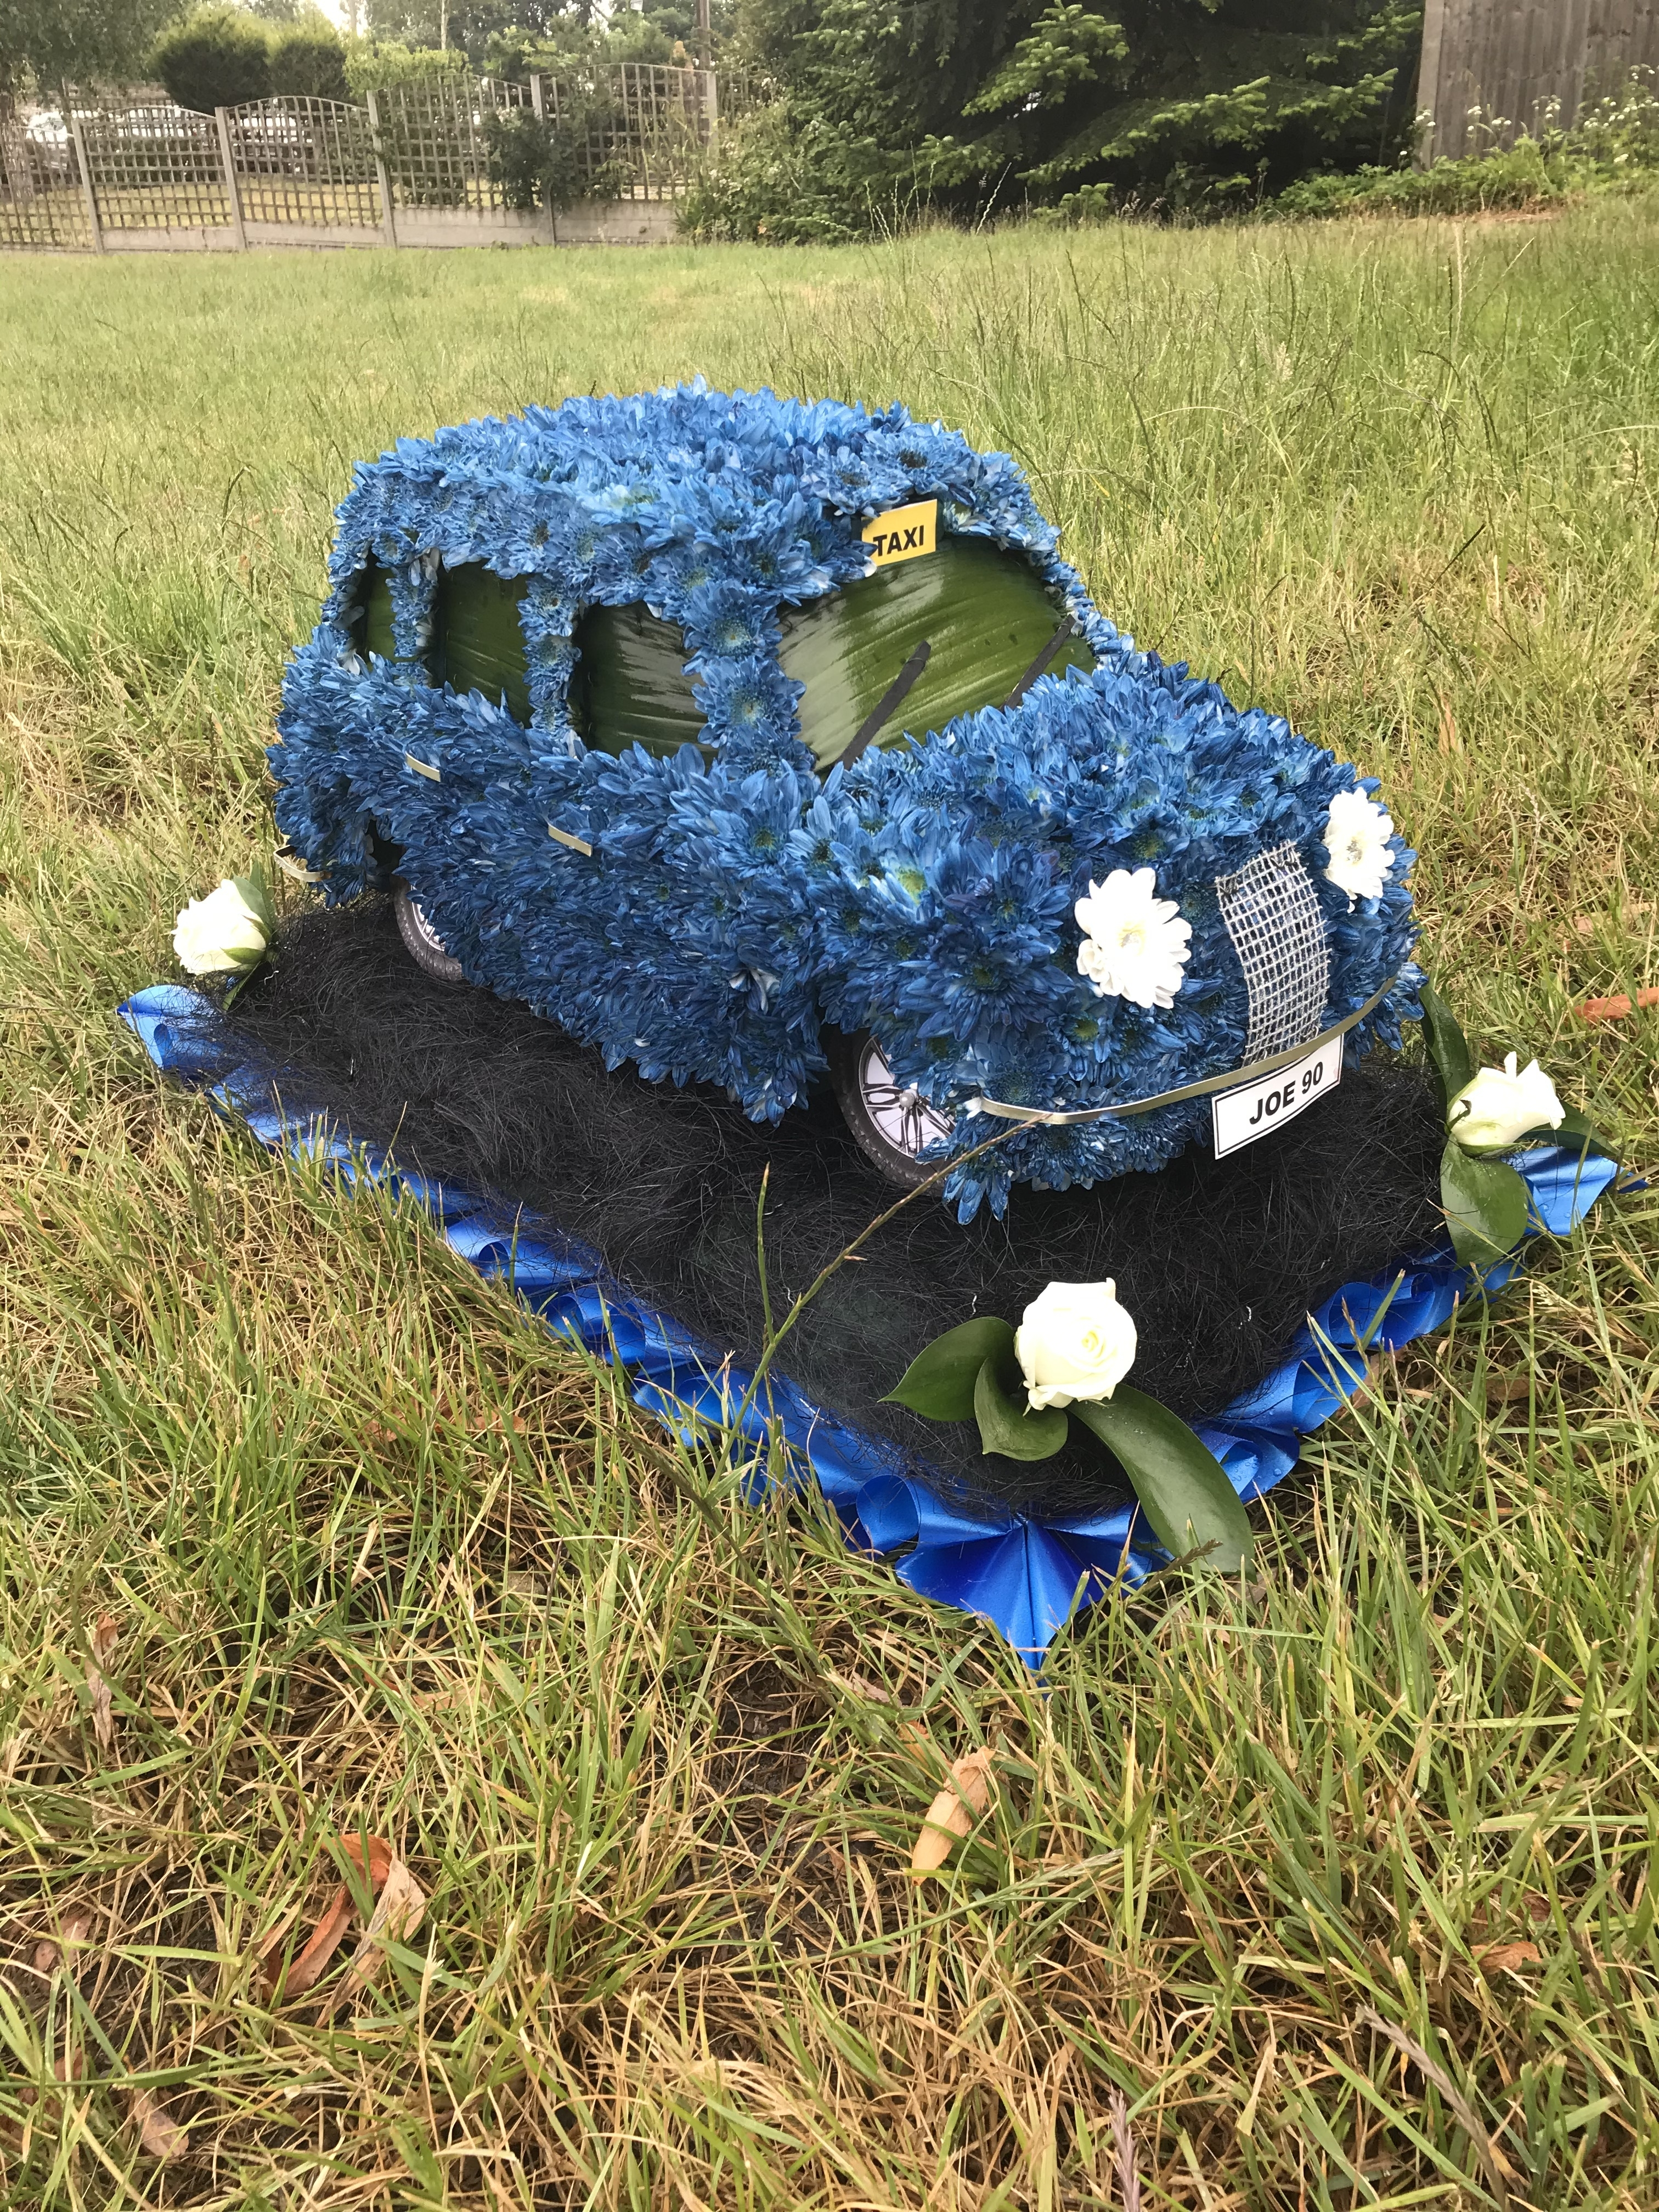 Taxi made from flowers